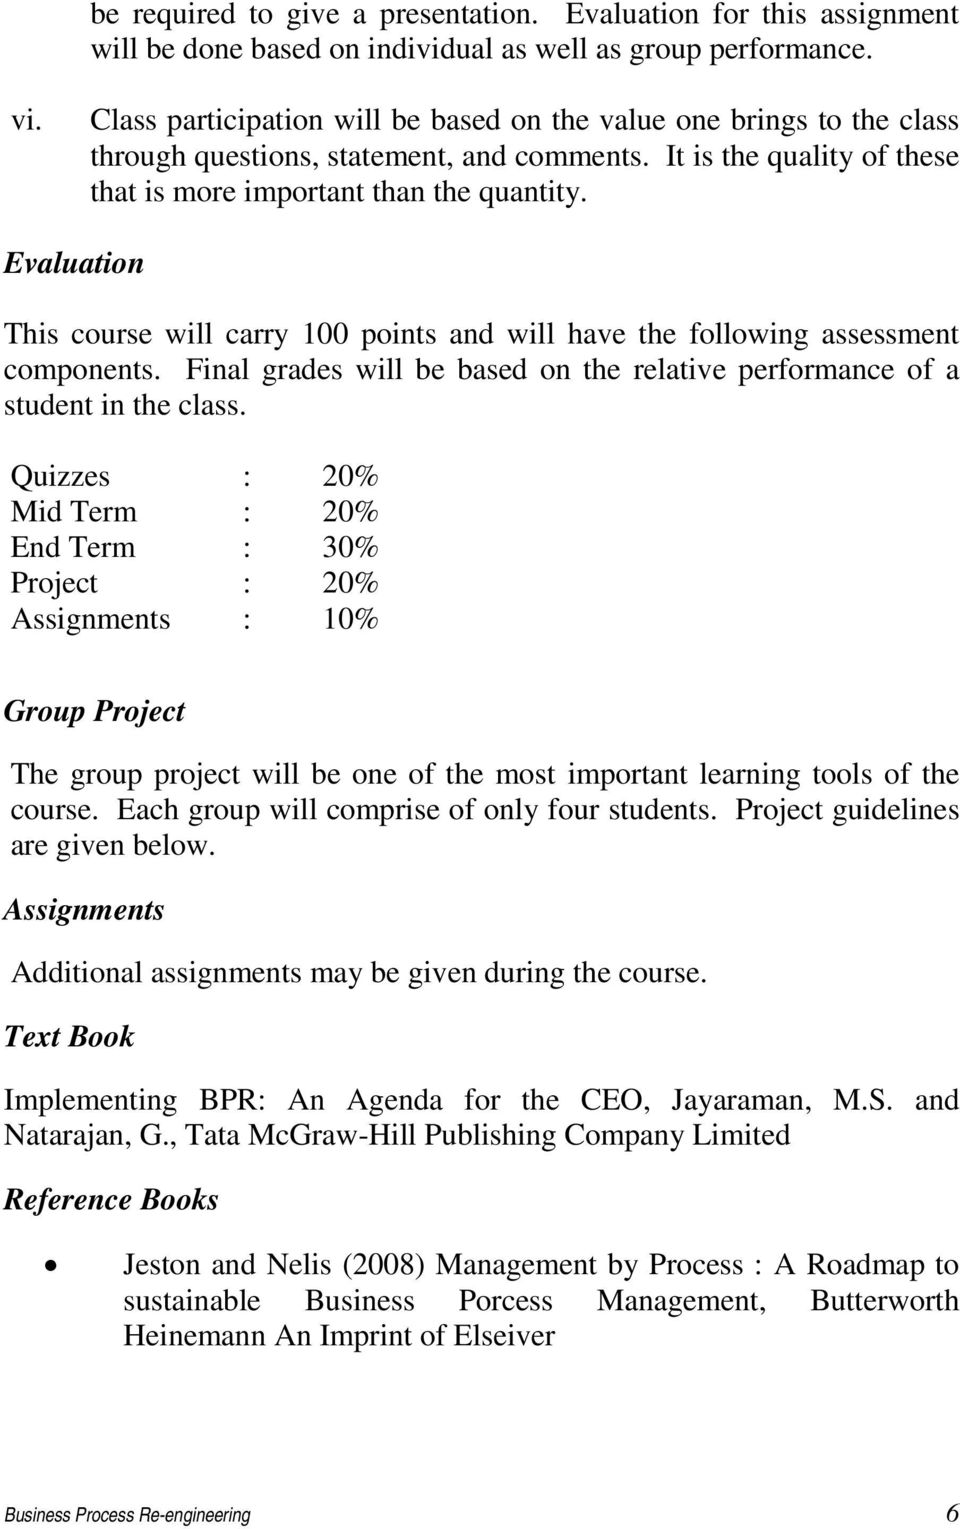 Evaluation This course will carry 100 points and will have the following assessment components. Final grades will be based on the relative performance of a student in the class.